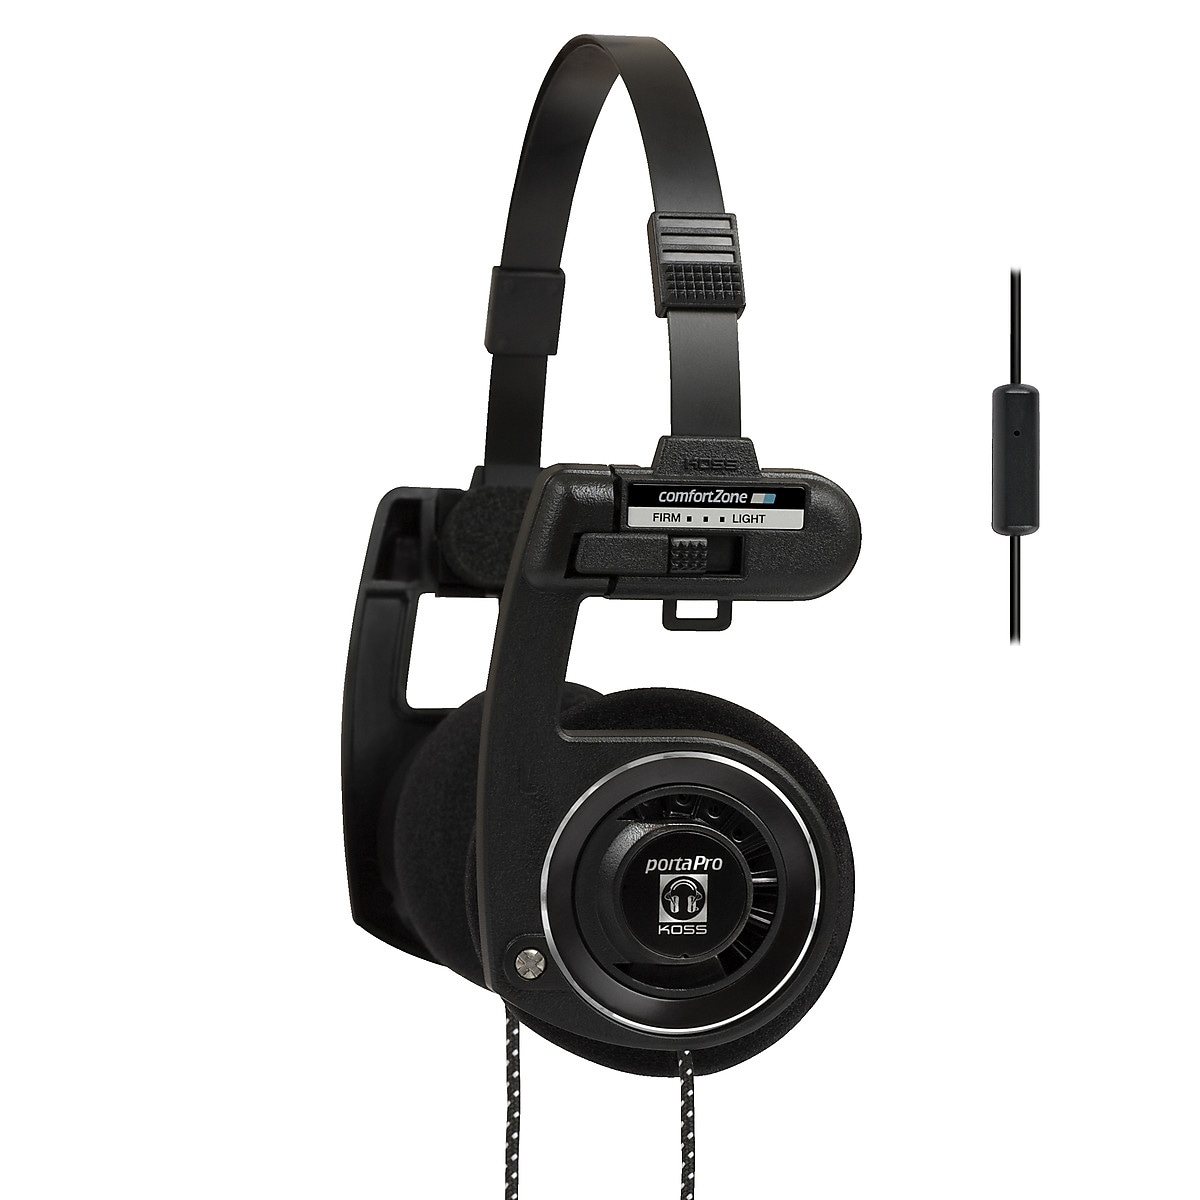 Kuulokkeet Koss iPorta Pro 3.0 Dark Master On-Ear